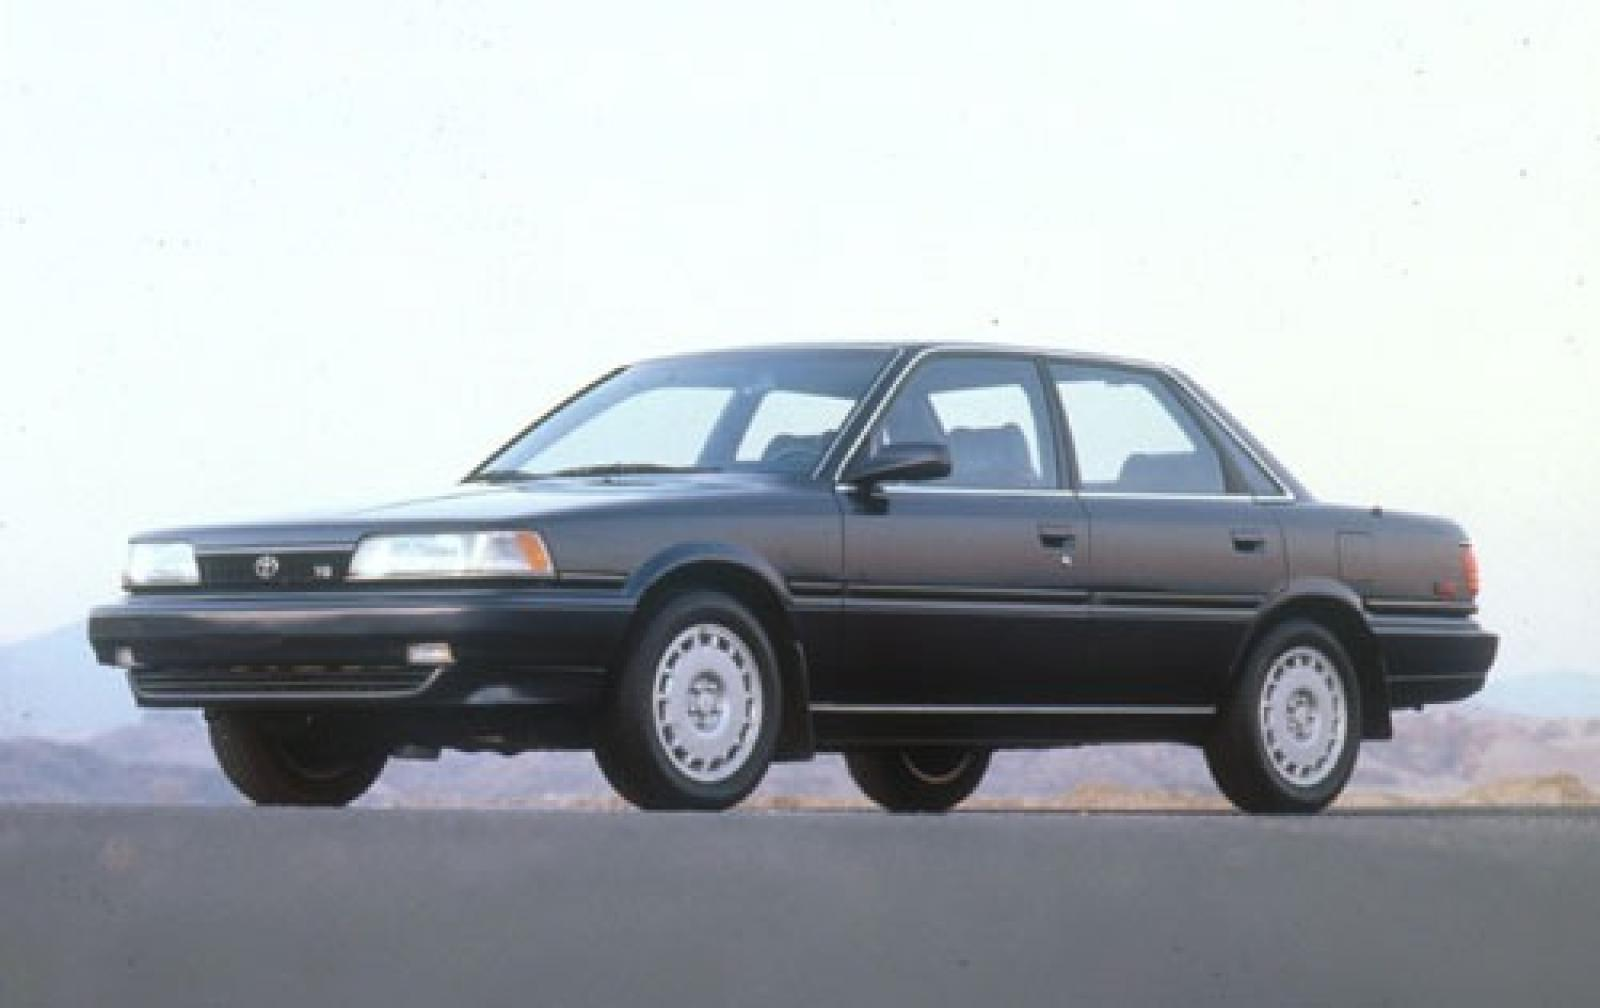 1991 Camry Black 91 Toyota Dx Engine Diagram Information And Photos Zombiedrive 1600x1008